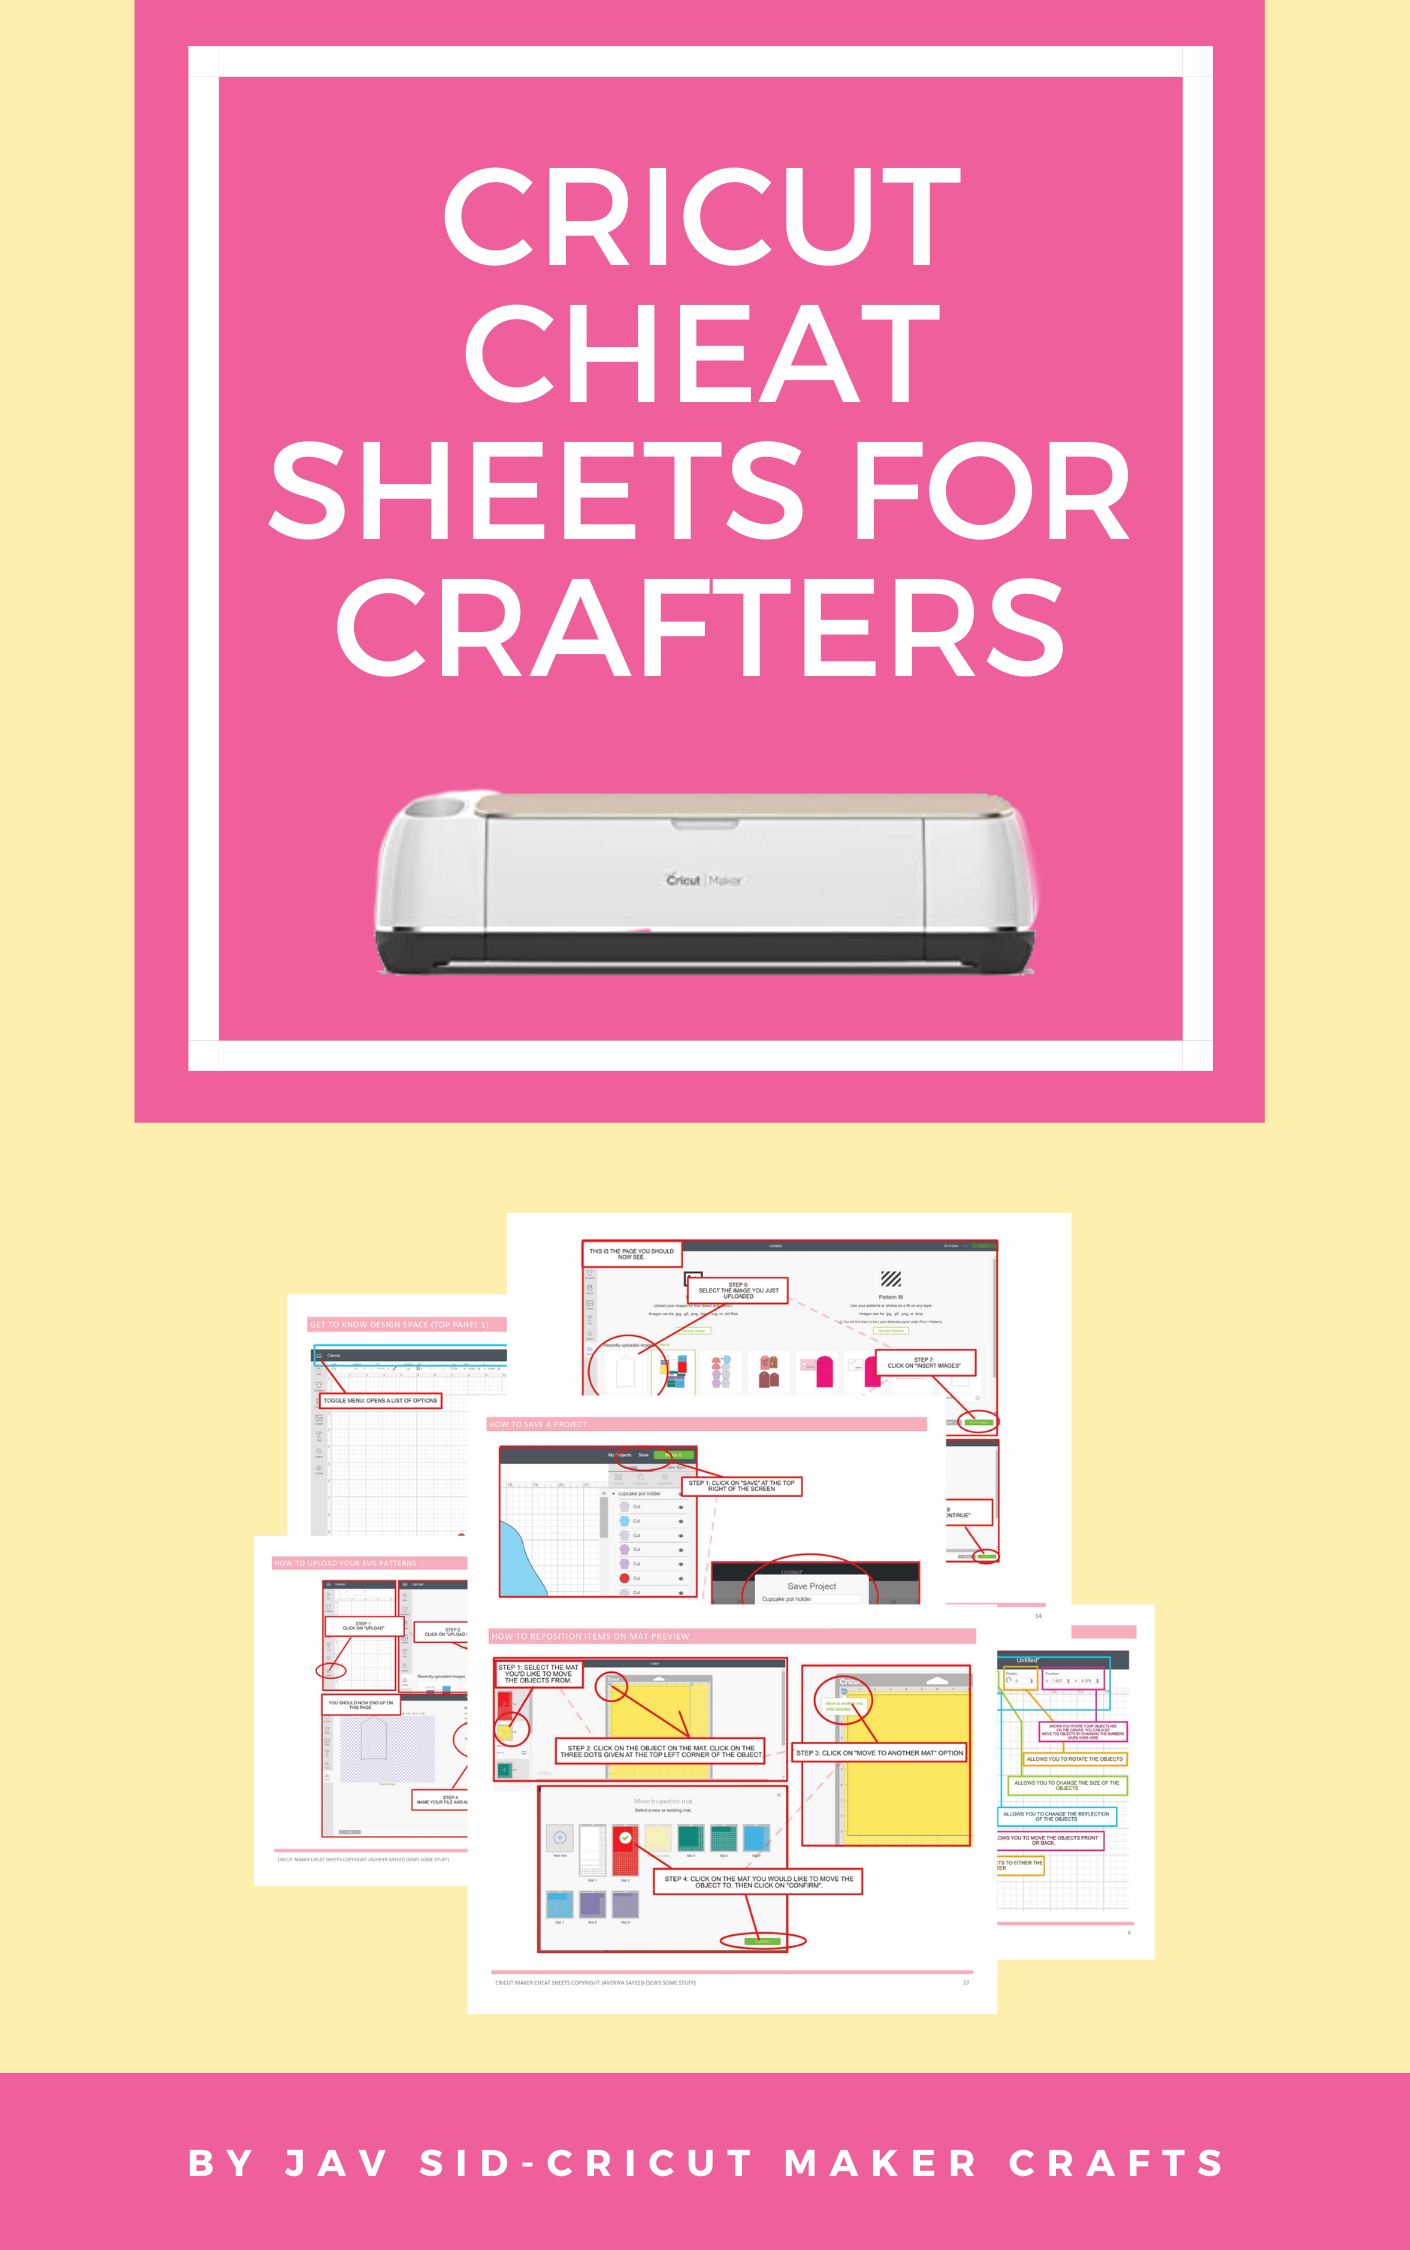 This is an image for the Cricut cheat sheets for cricut crafters by cricut maker crafts